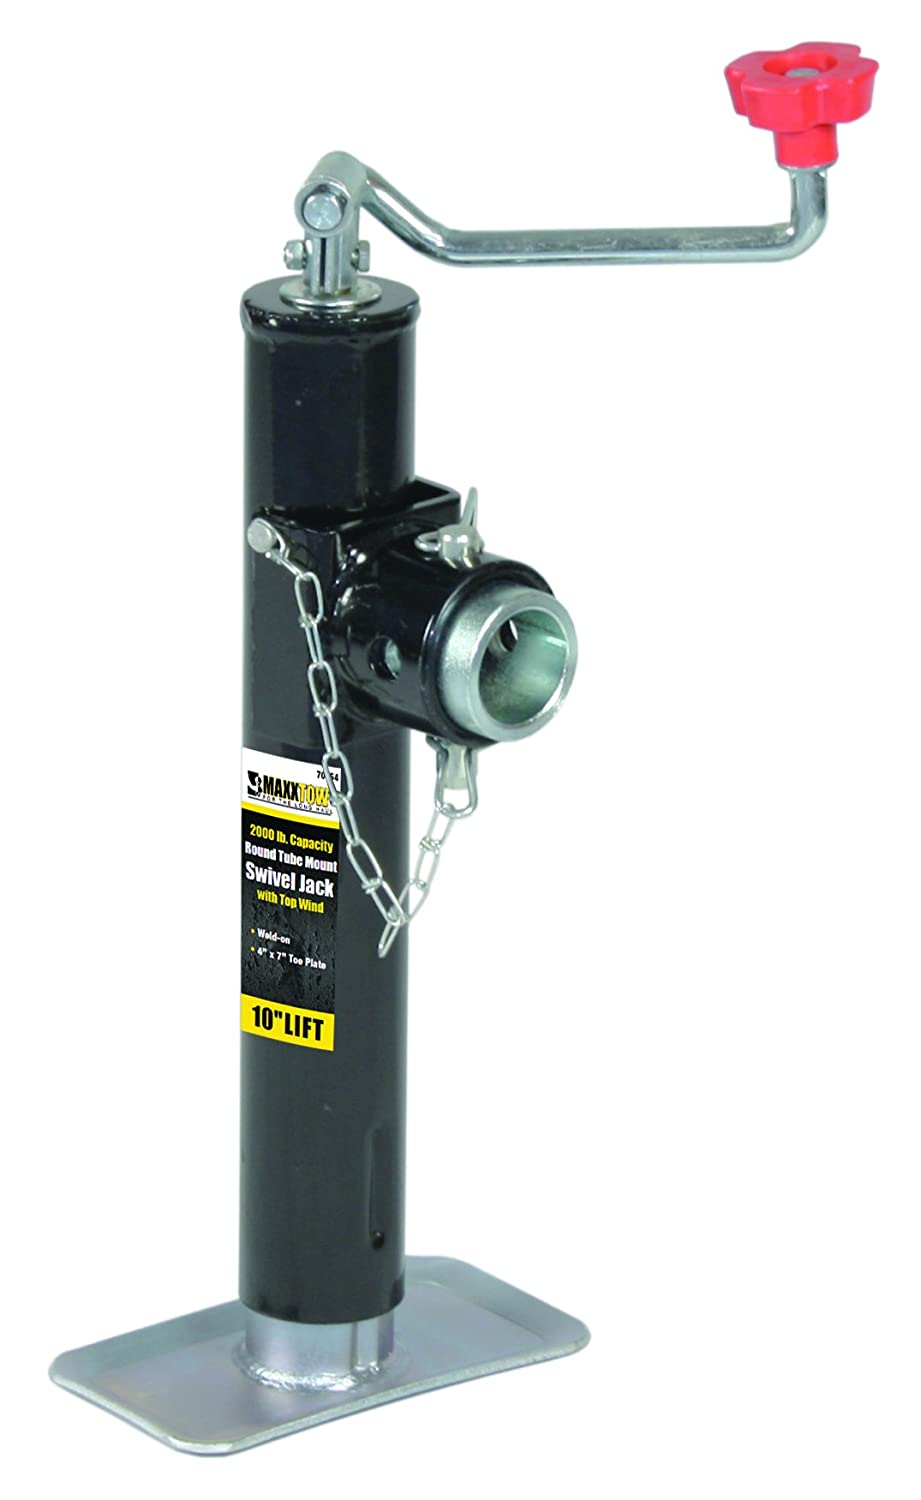 Capacity MaxxHaul  70155 15 Lift Ring Mount Trailer Jack with Top Wind 2000 lbs